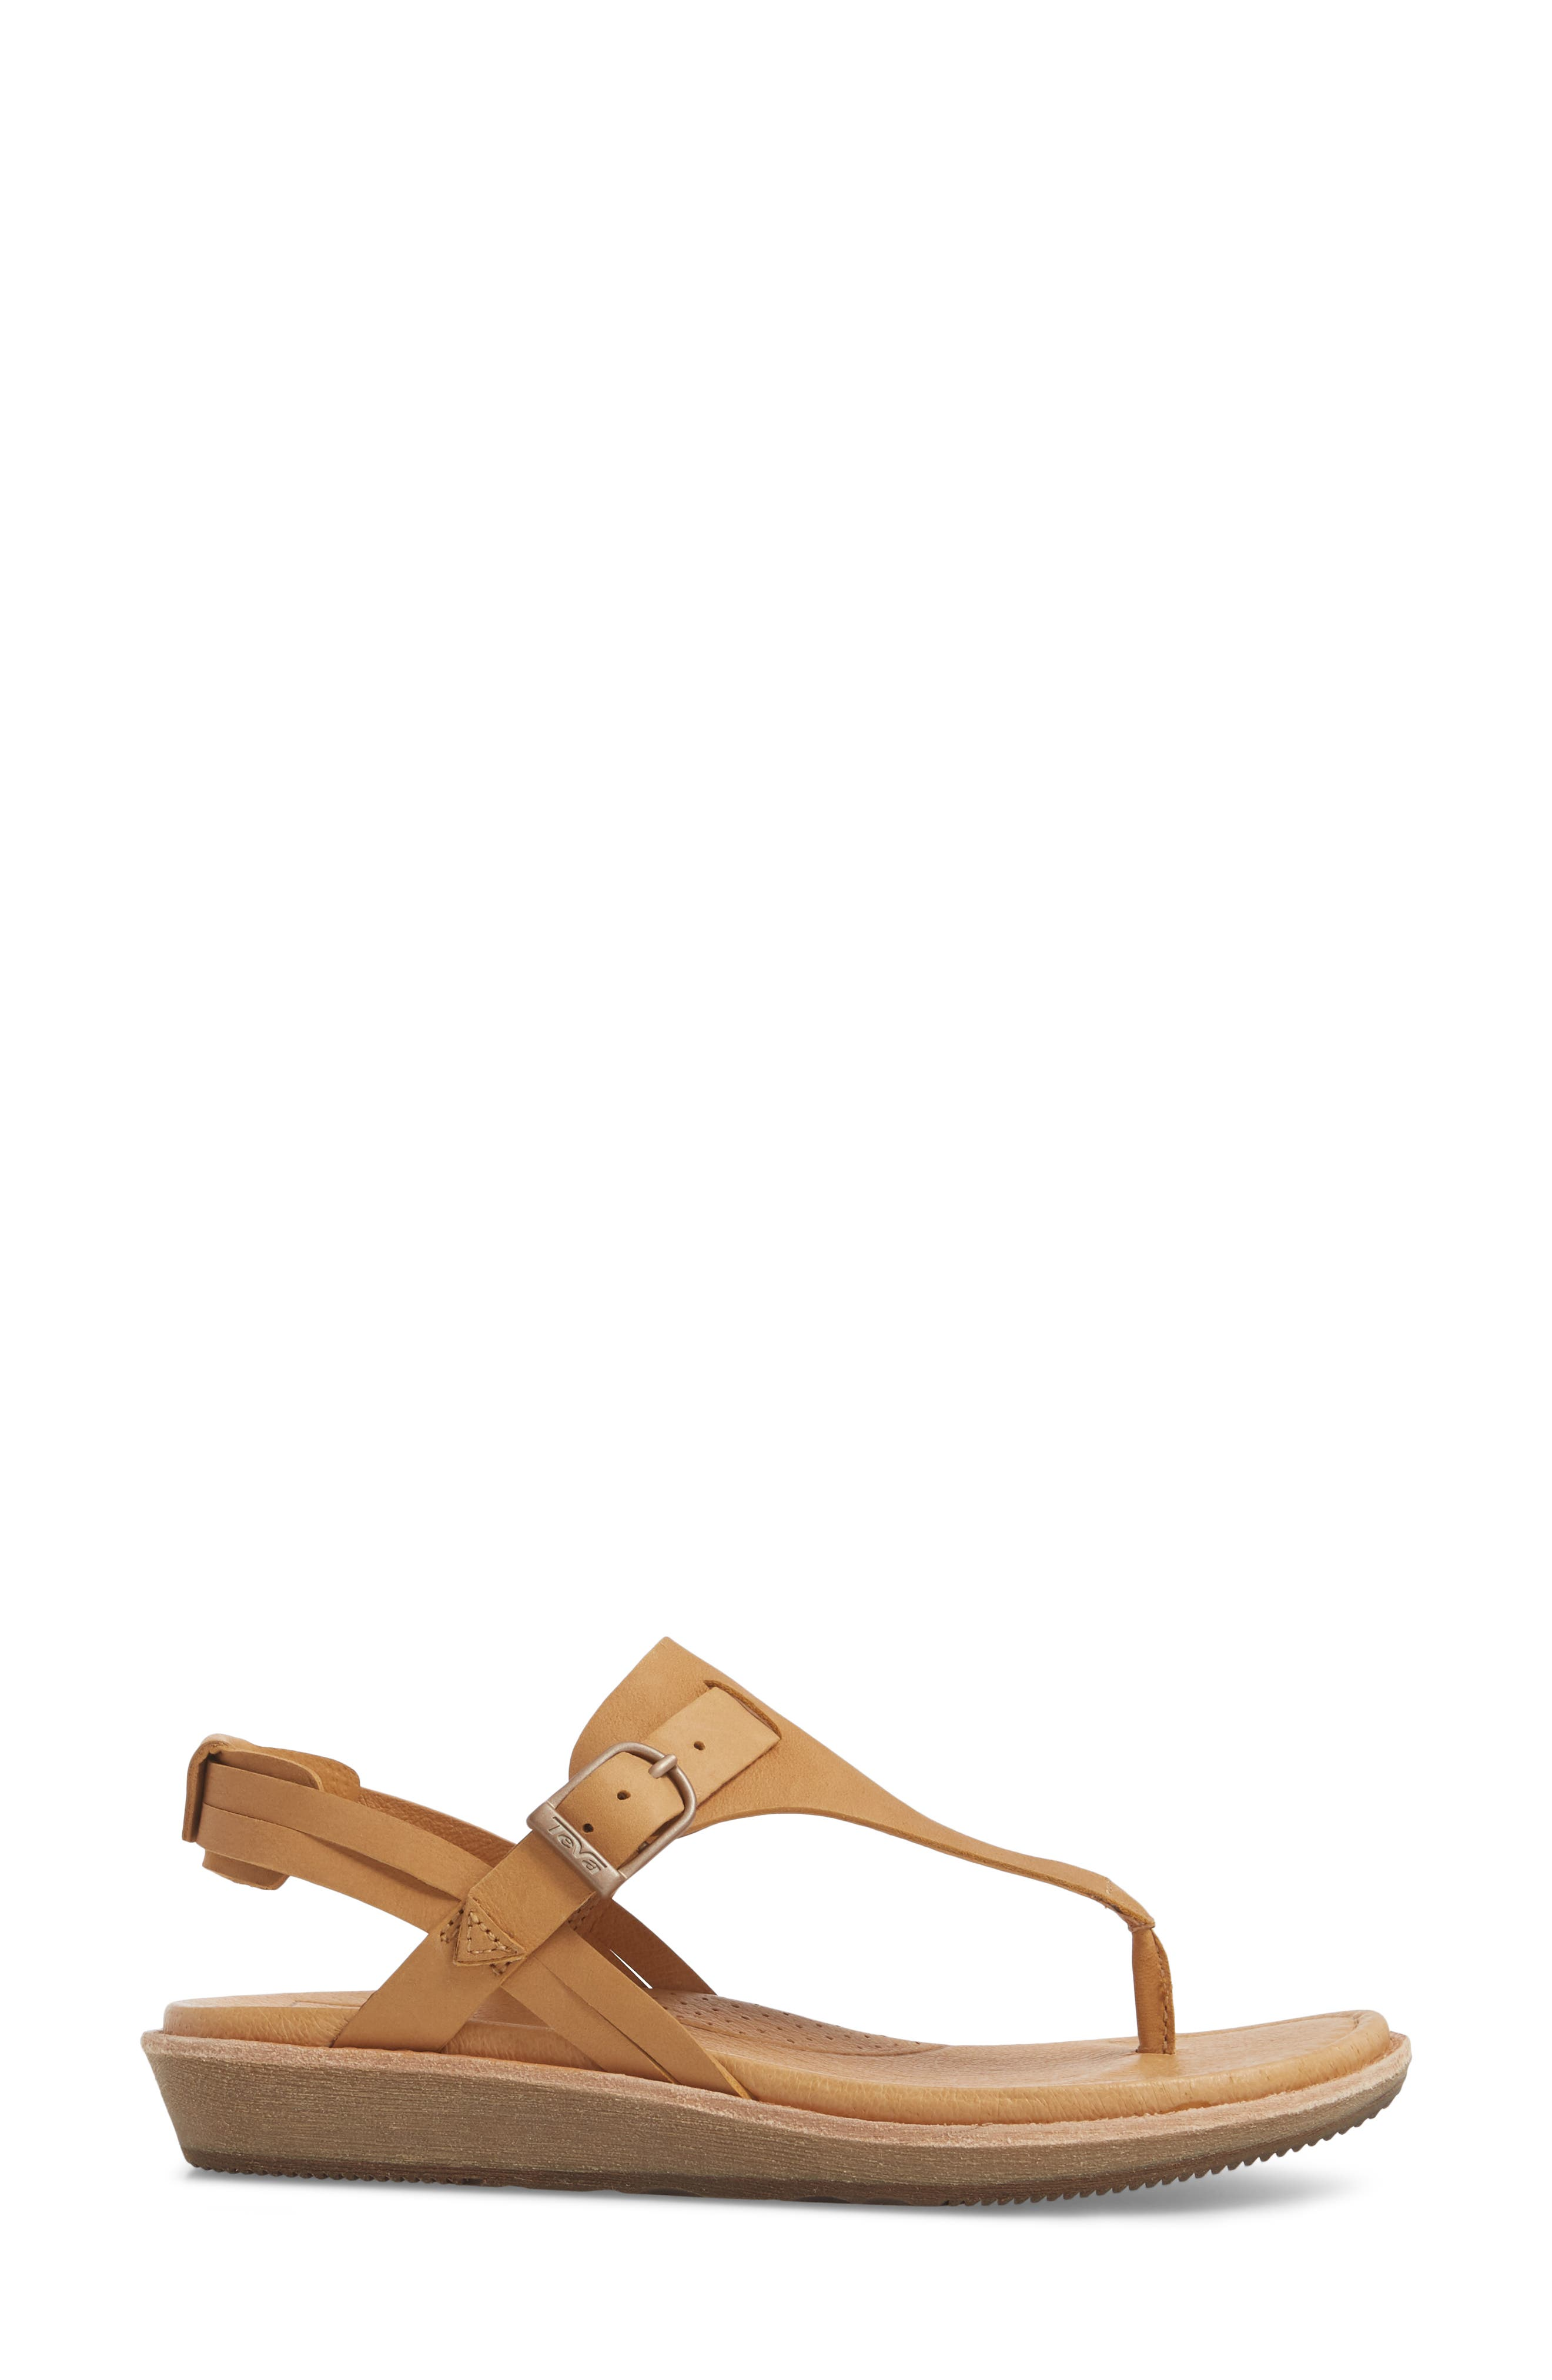 Encanta V-Strap Sandal,                             Alternate thumbnail 3, color,                             TAN